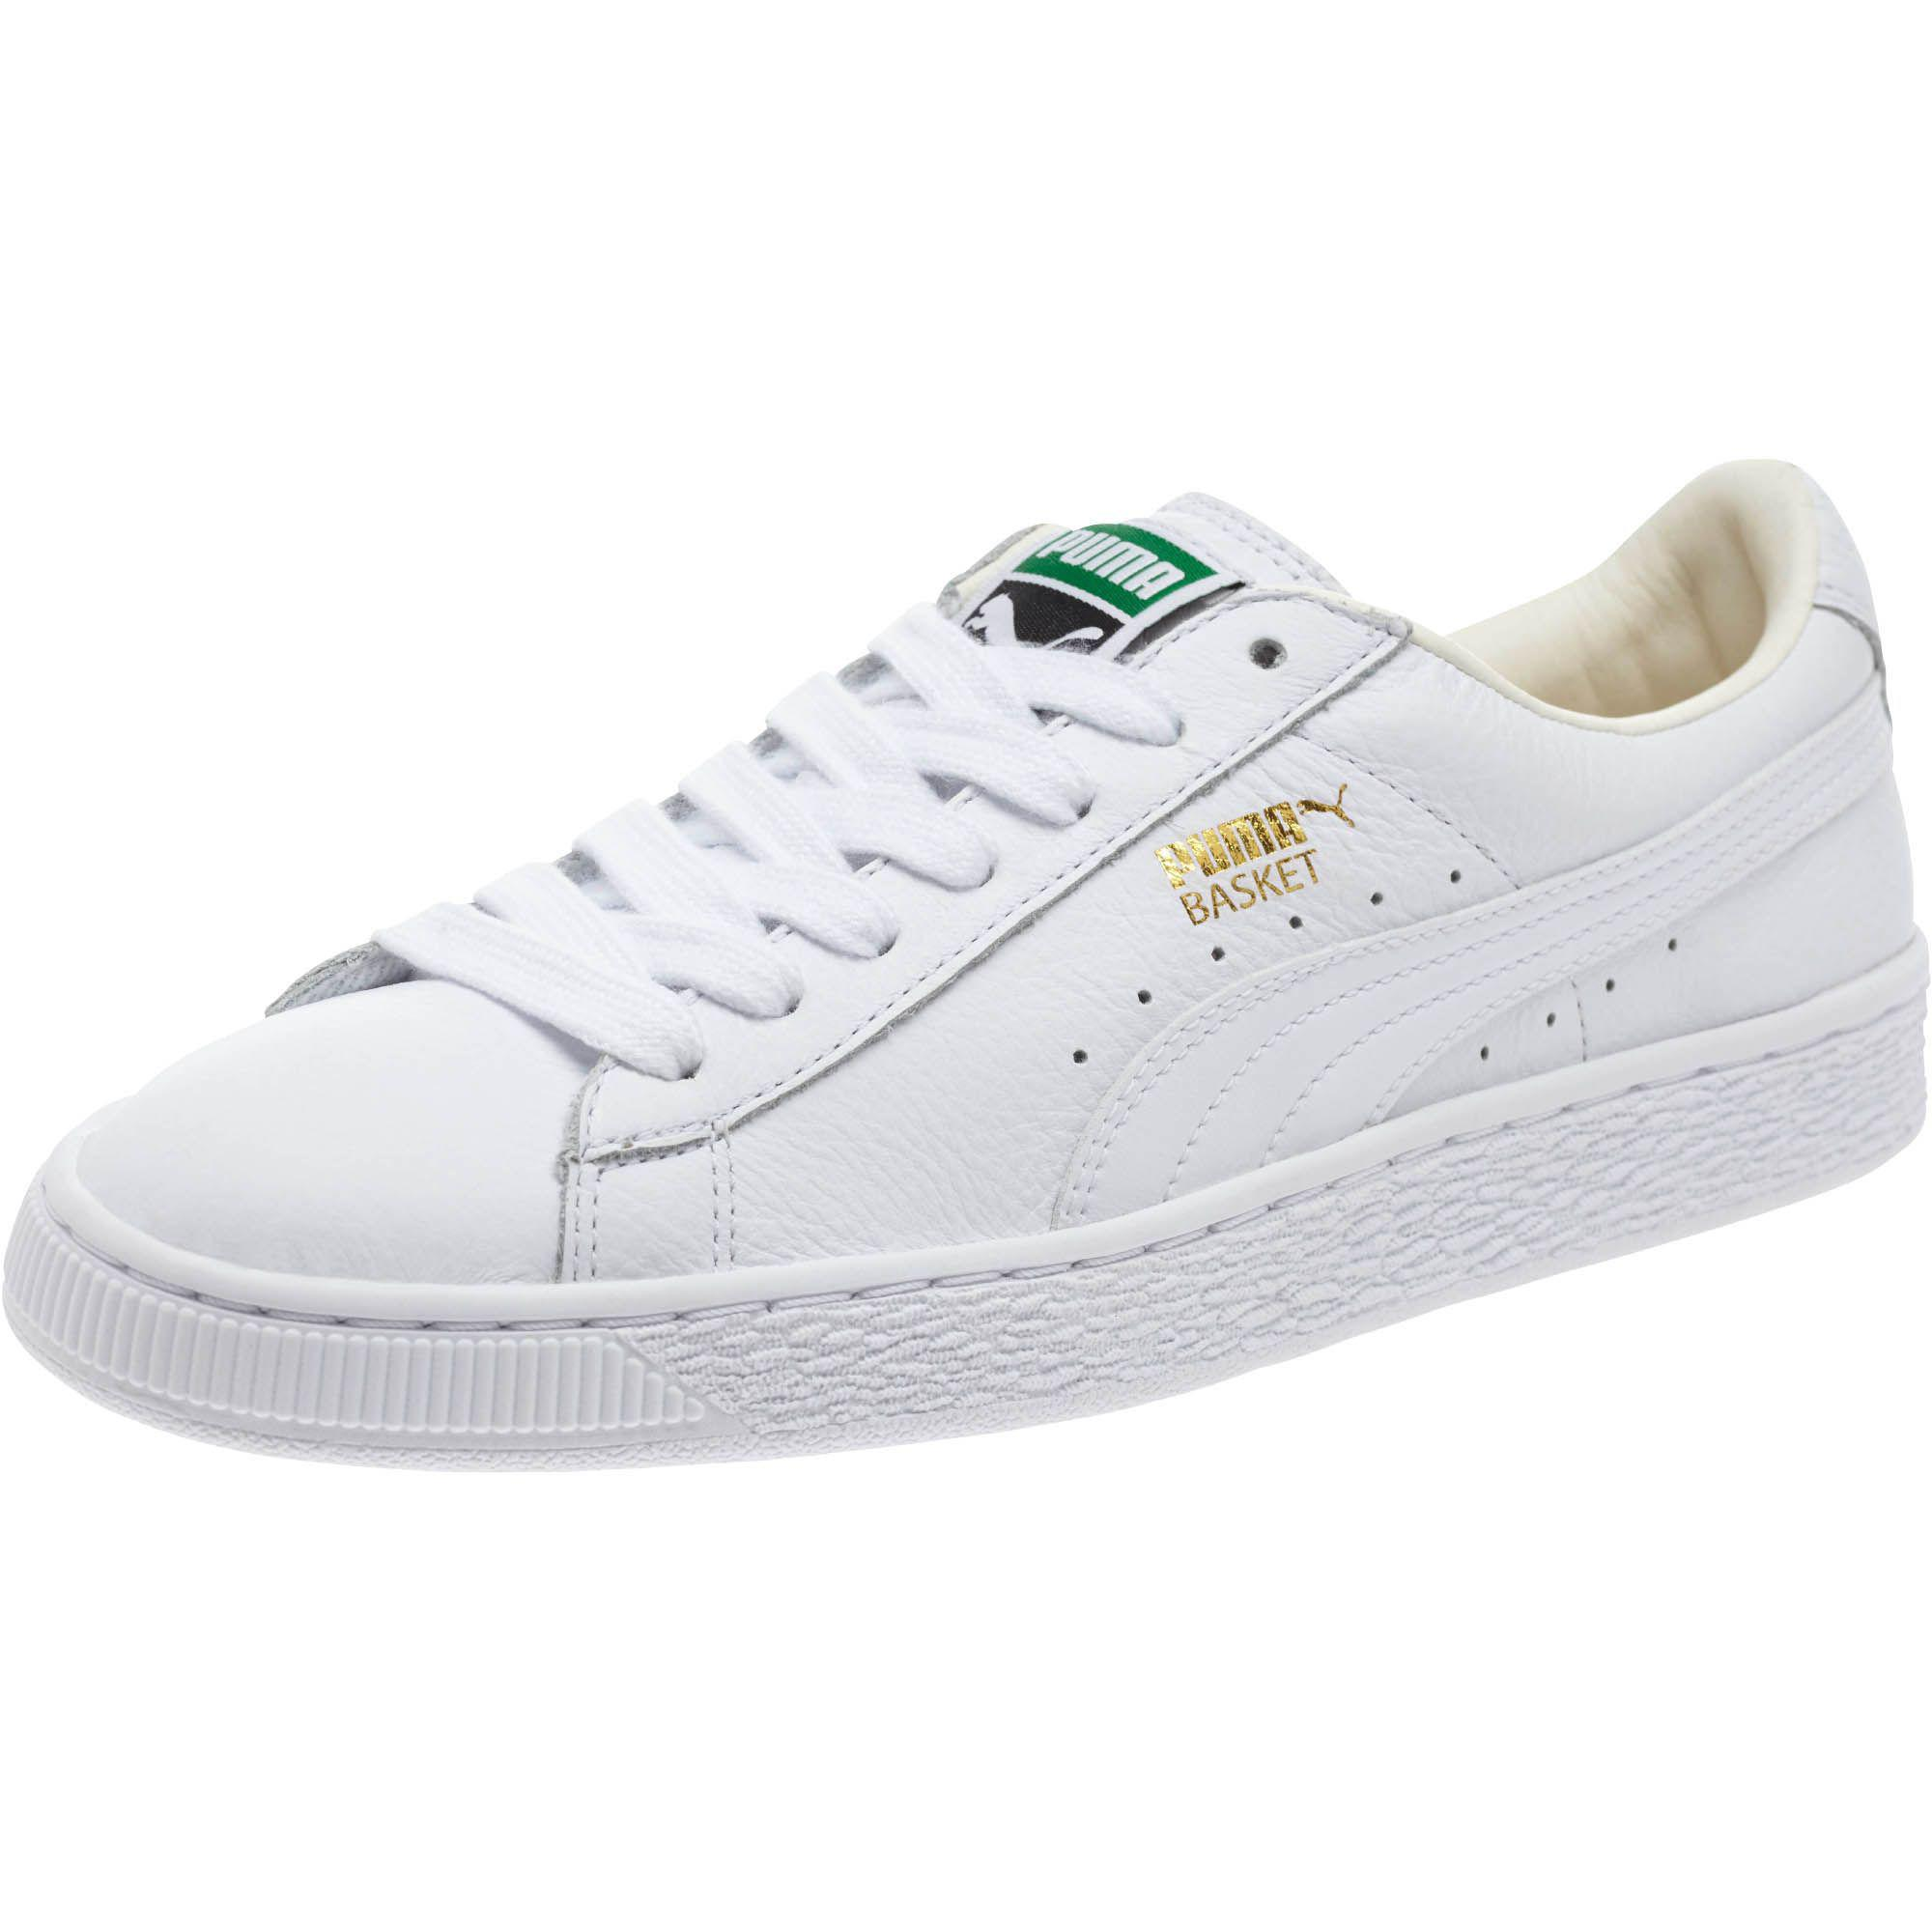 76ca04372975 Lyst - PUMA Basket Classic Lifestyle Women s Sneakers in White